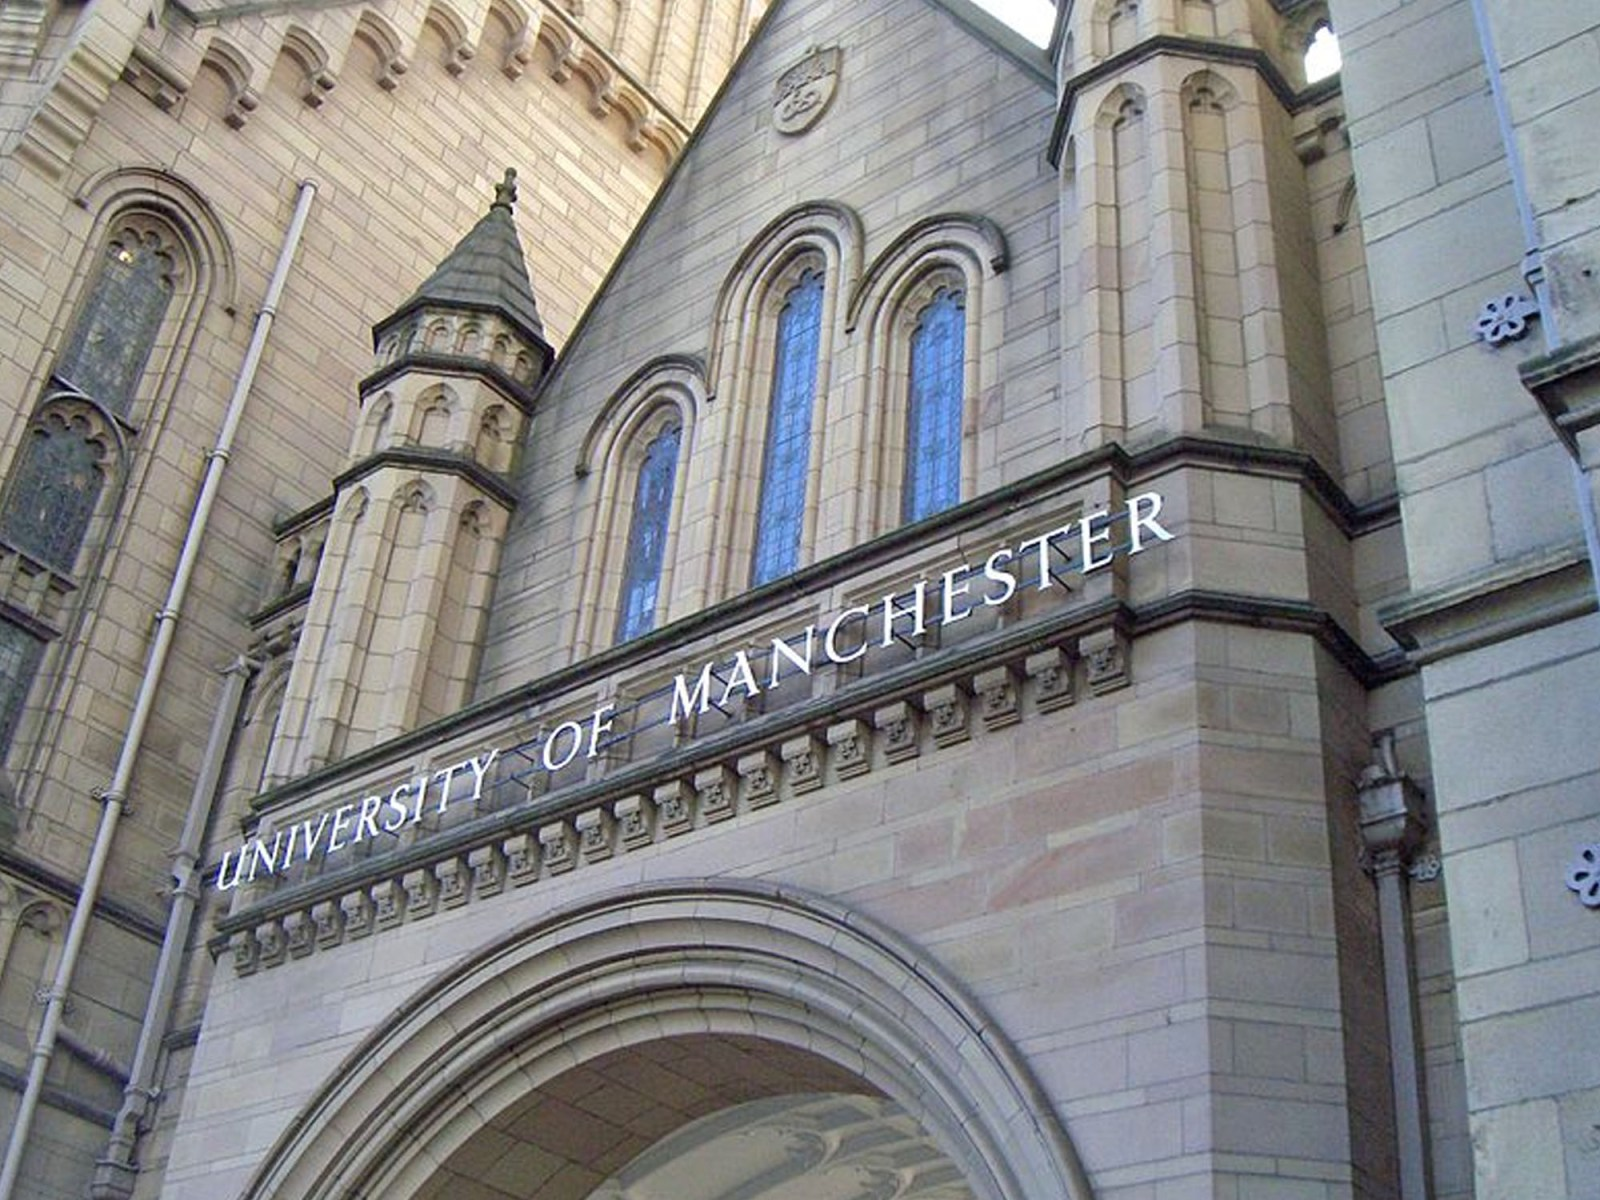 Nancy Rothwell, the vice chancellor of the University of Manchester, needs to hear what students have to say in regards to our education.